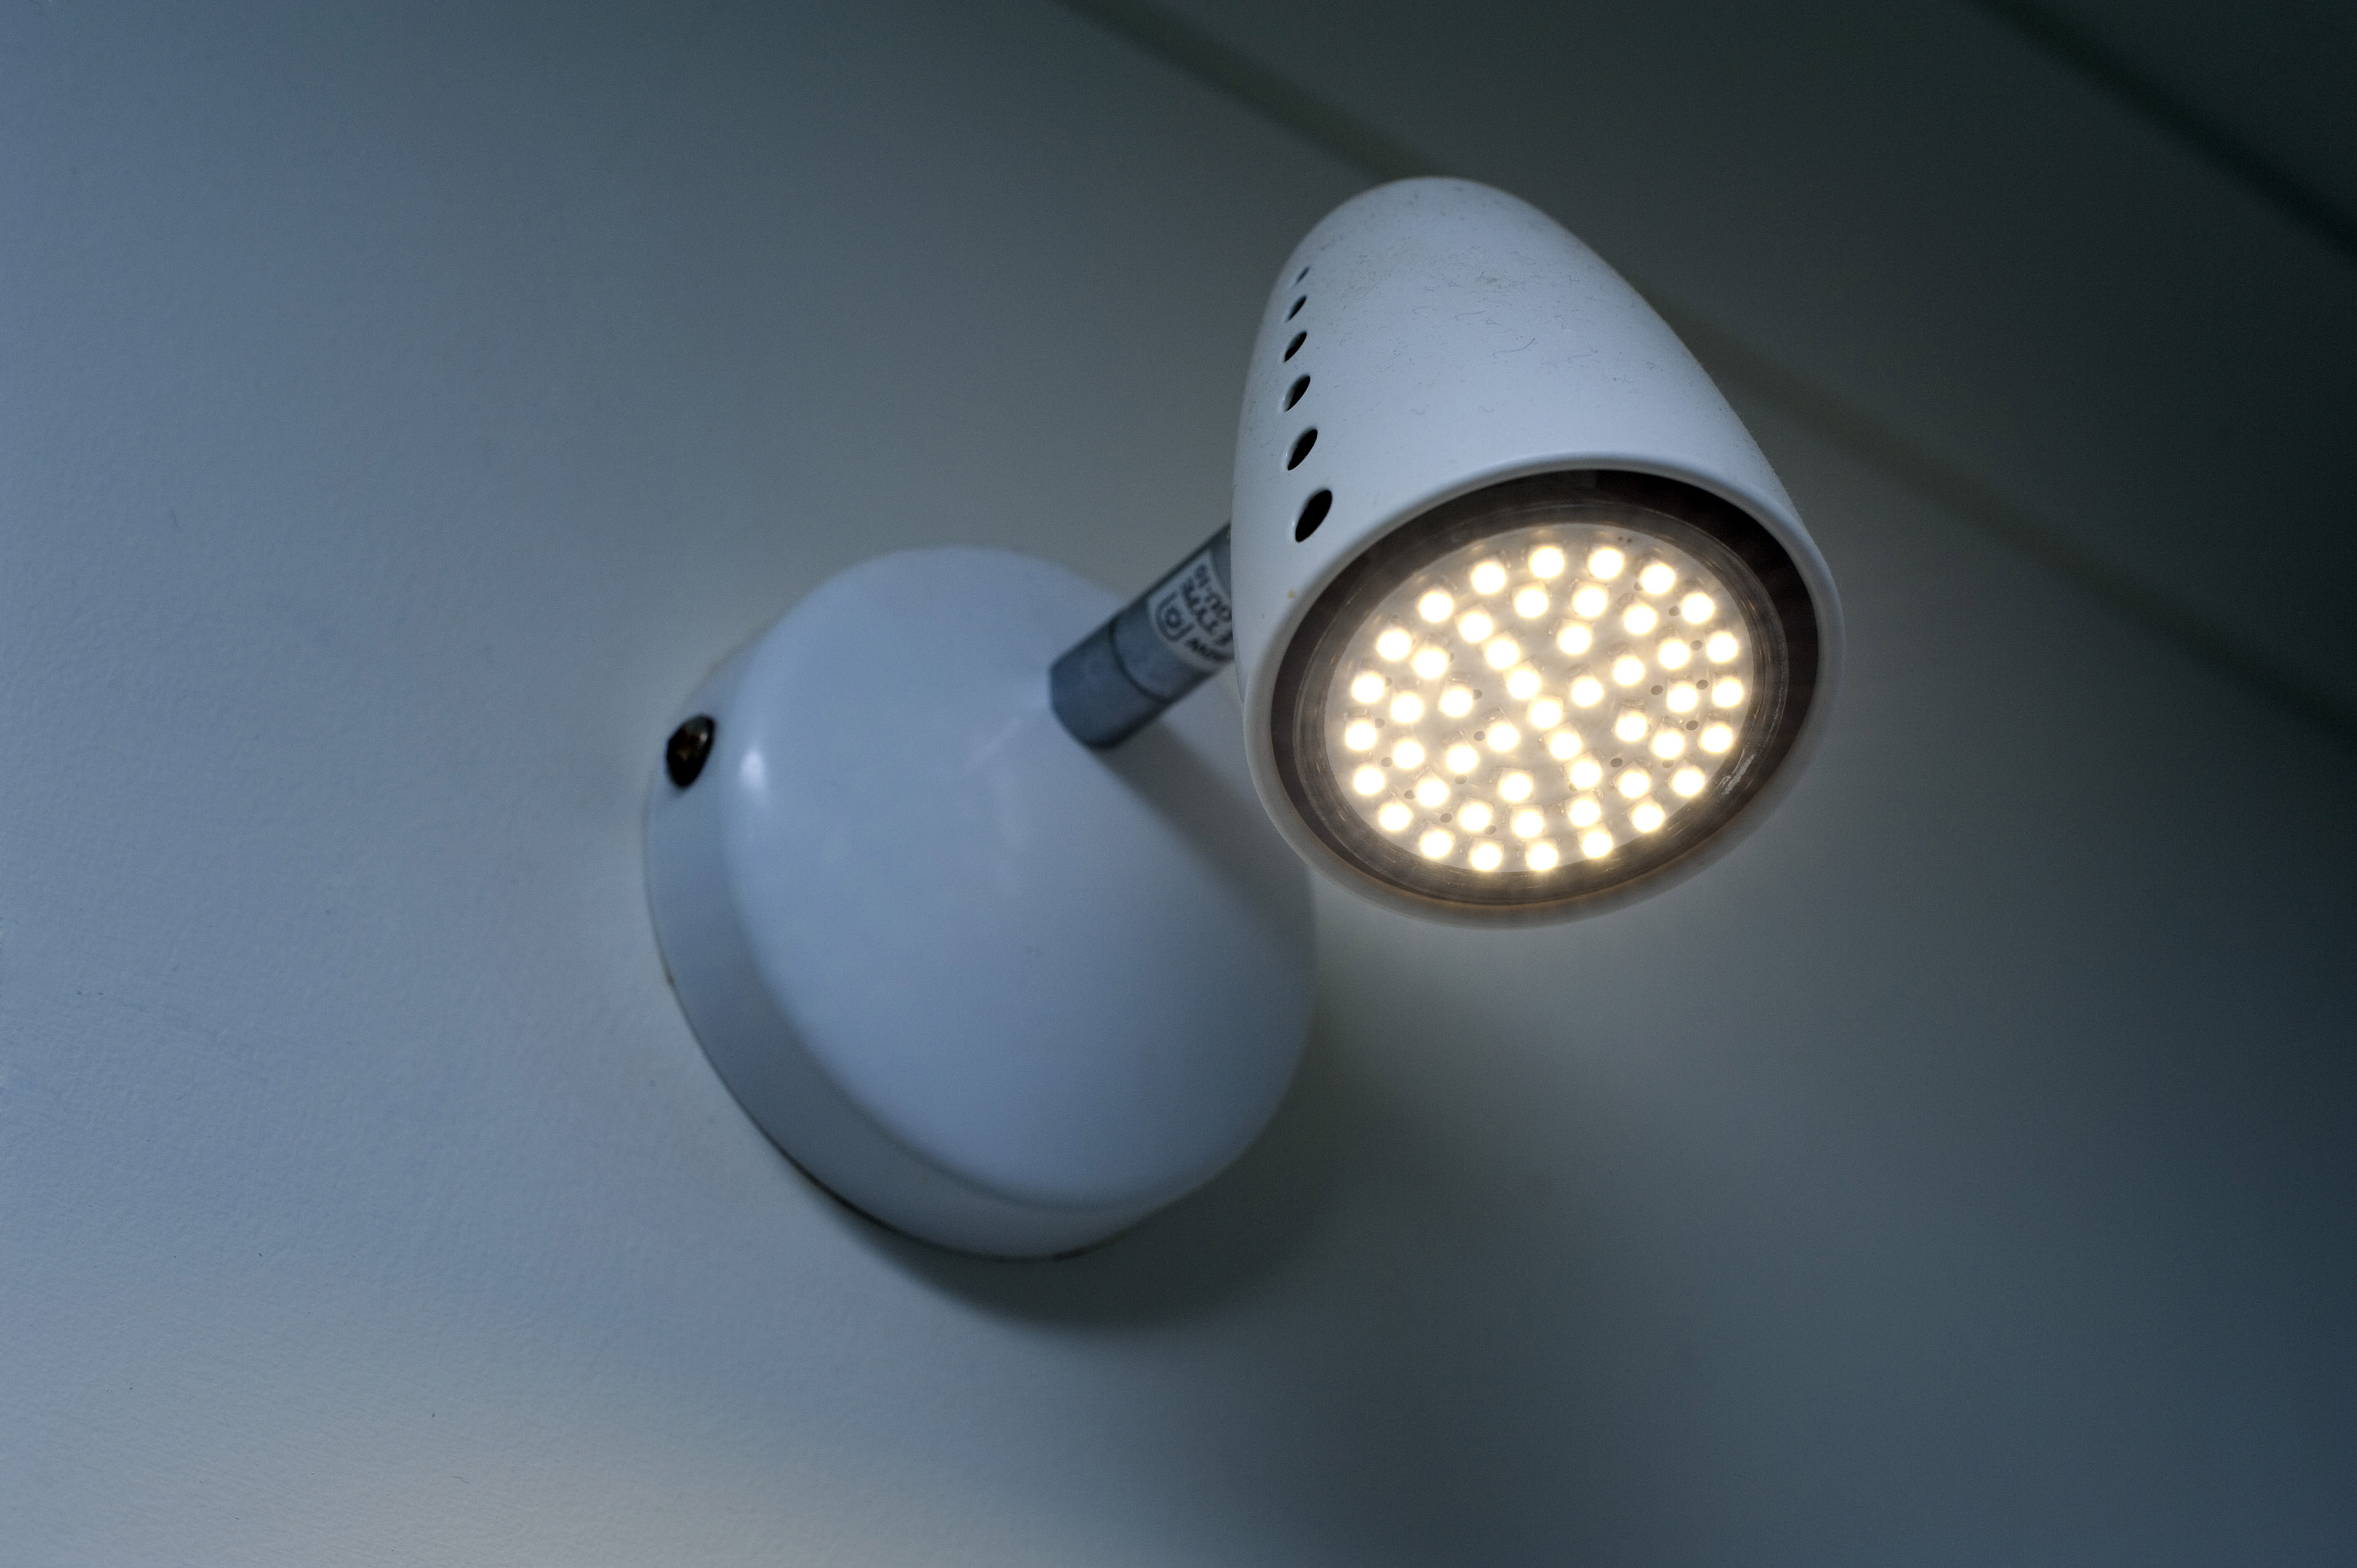 An downlight with illuminated LED's mounted on a white interior home wall.